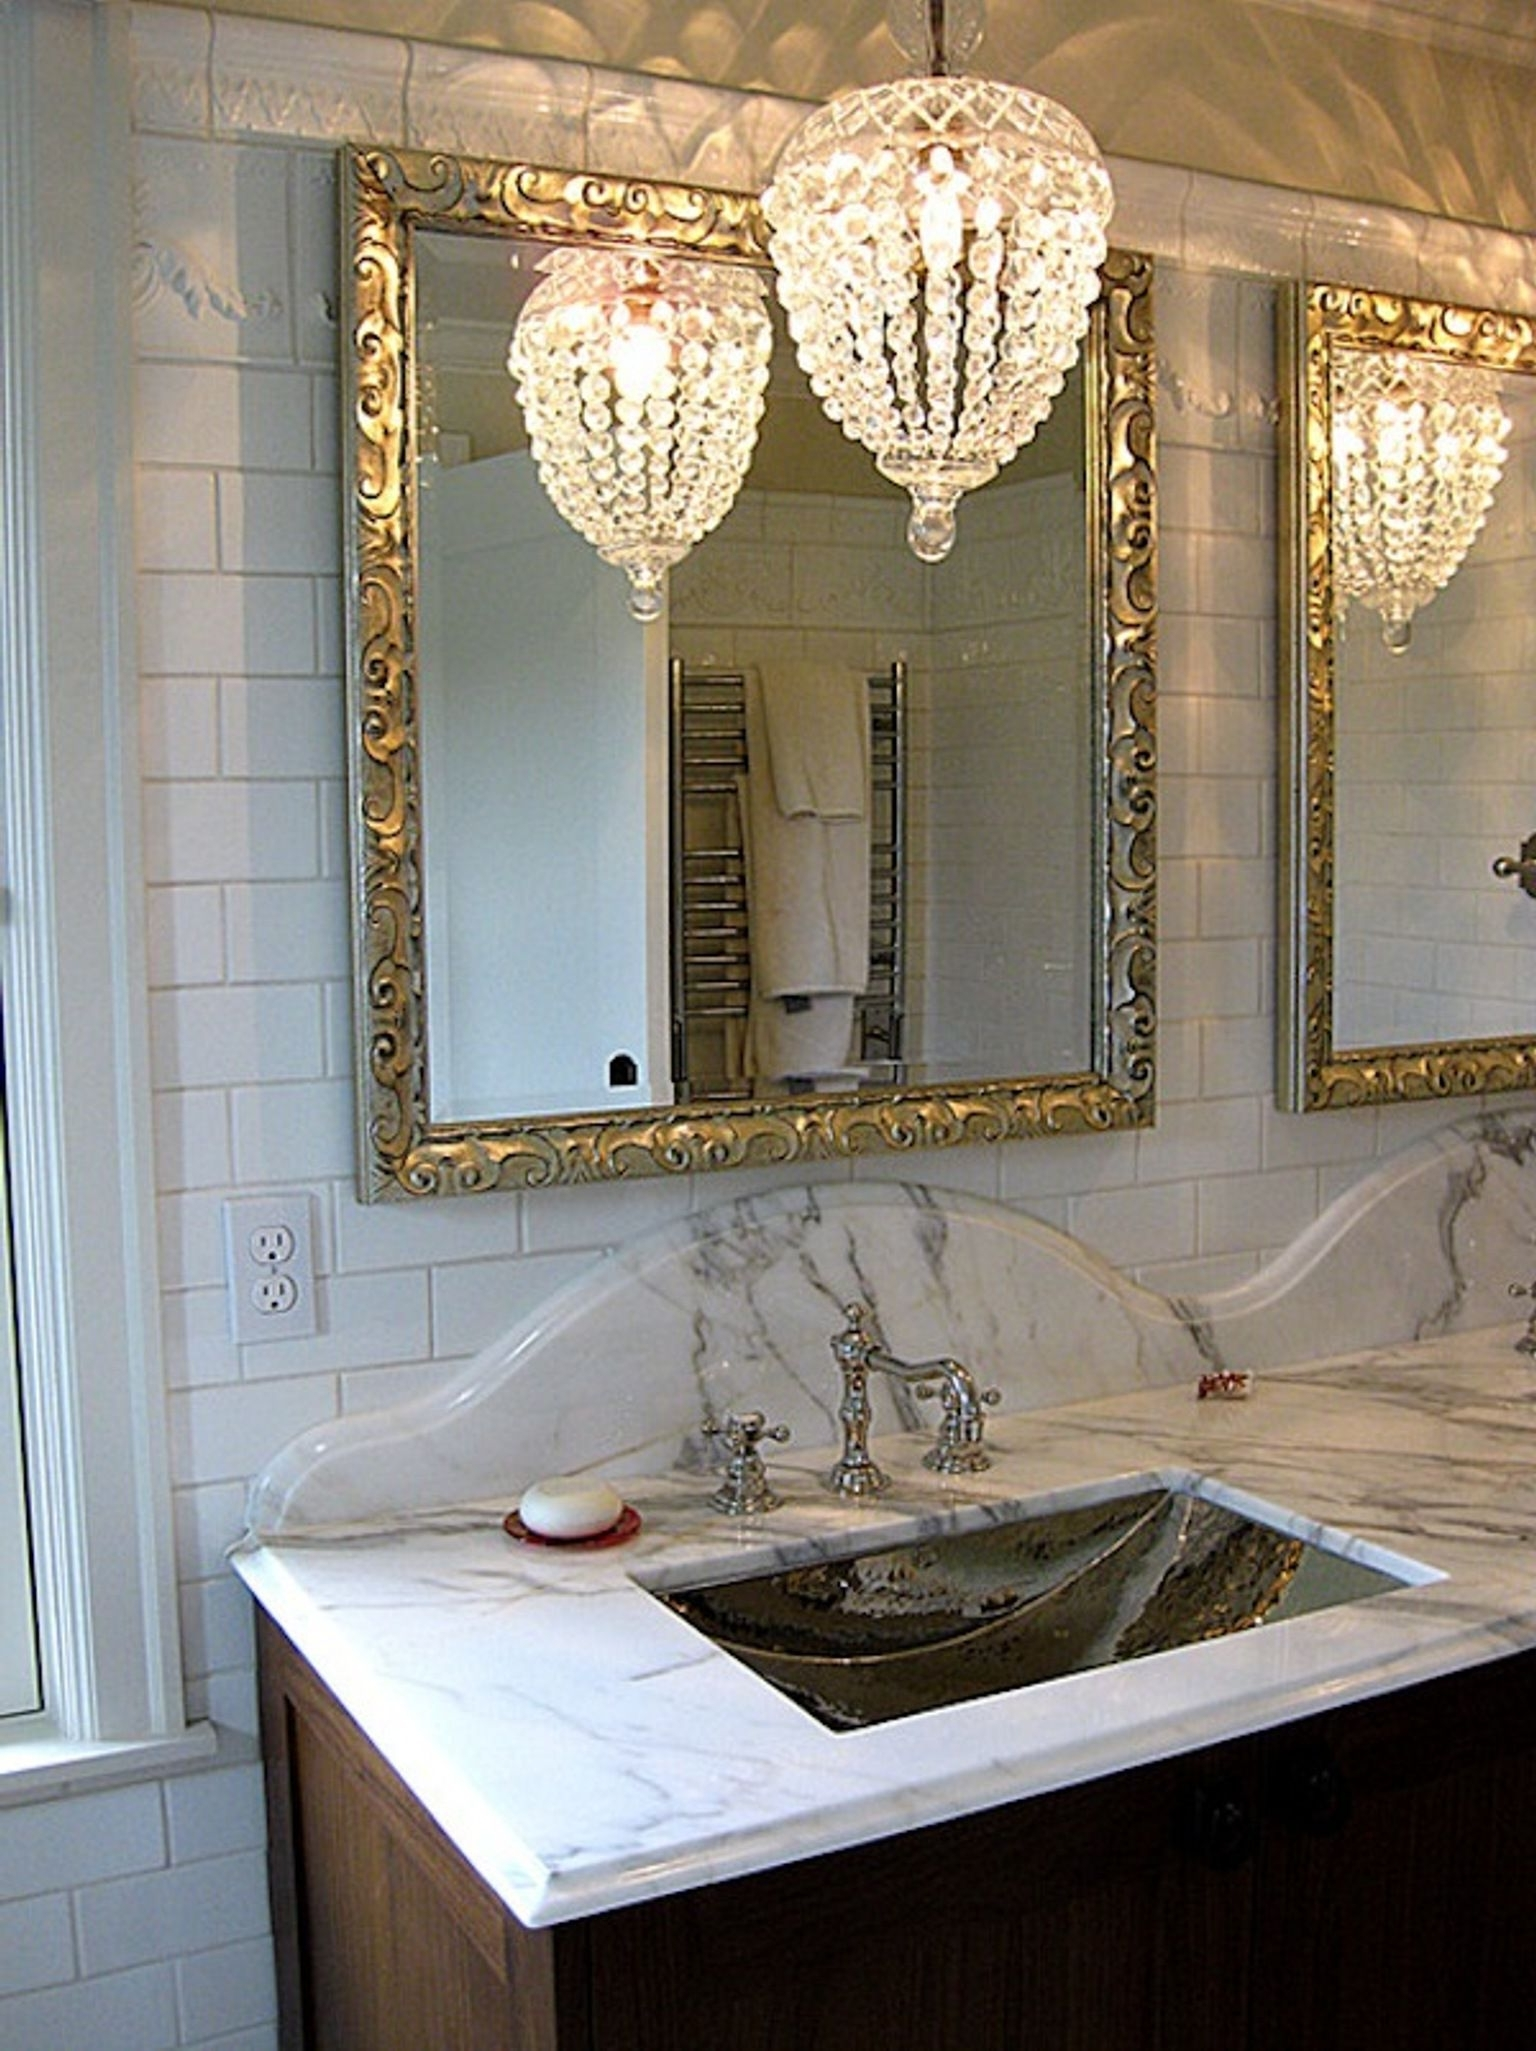 Famous Bathroom: Classical Bathroom Chandeliers Ikea With Curve Gold Frame Pertaining To Crystal Bathroom Chandelier (View 18 of 20)